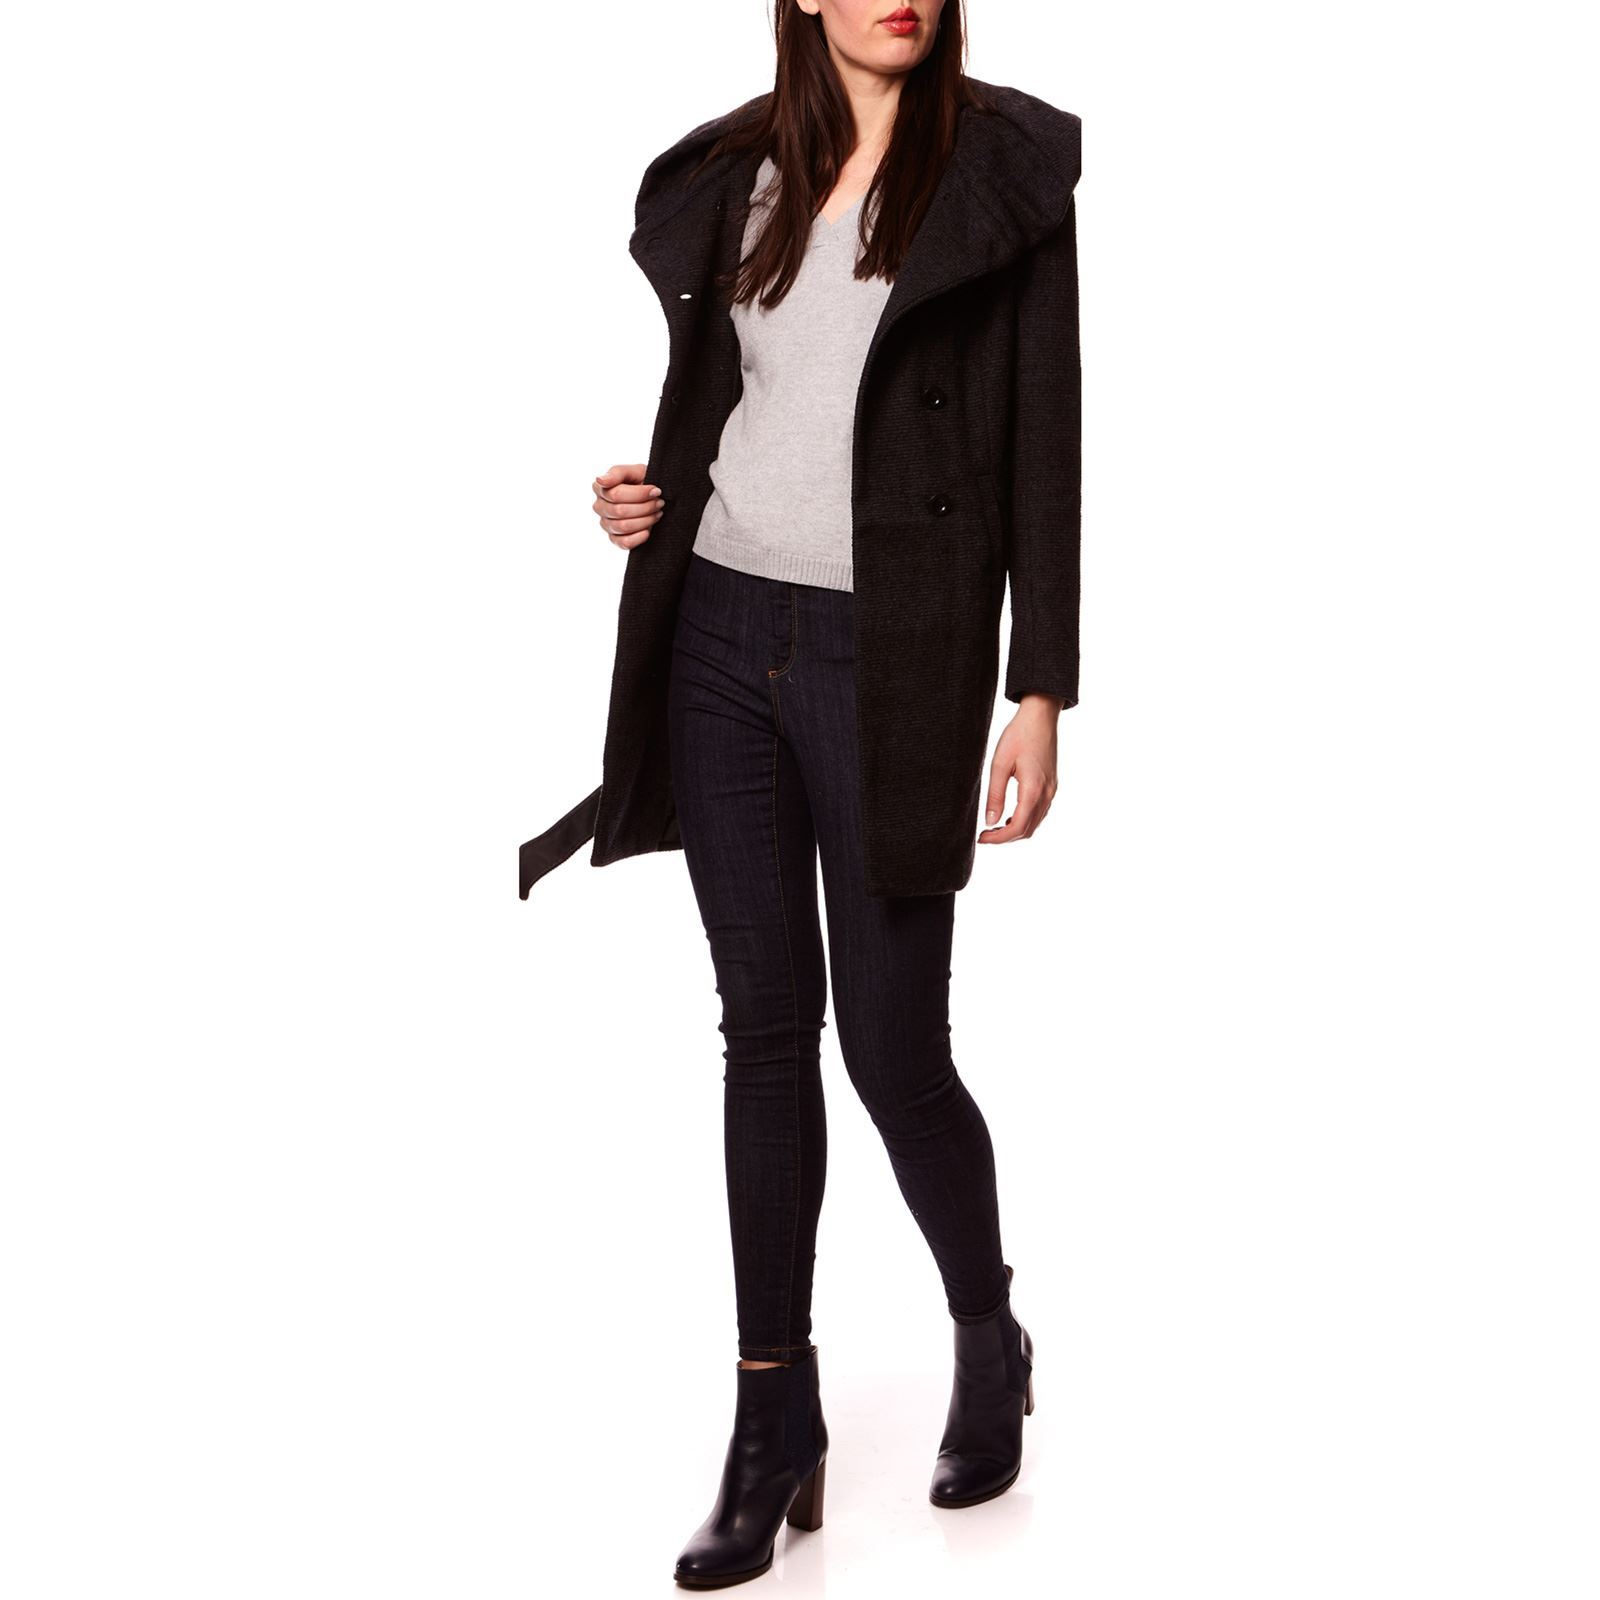 Only Lisa - Manteau 52% laine - noir   BrandAlley b426504988fe